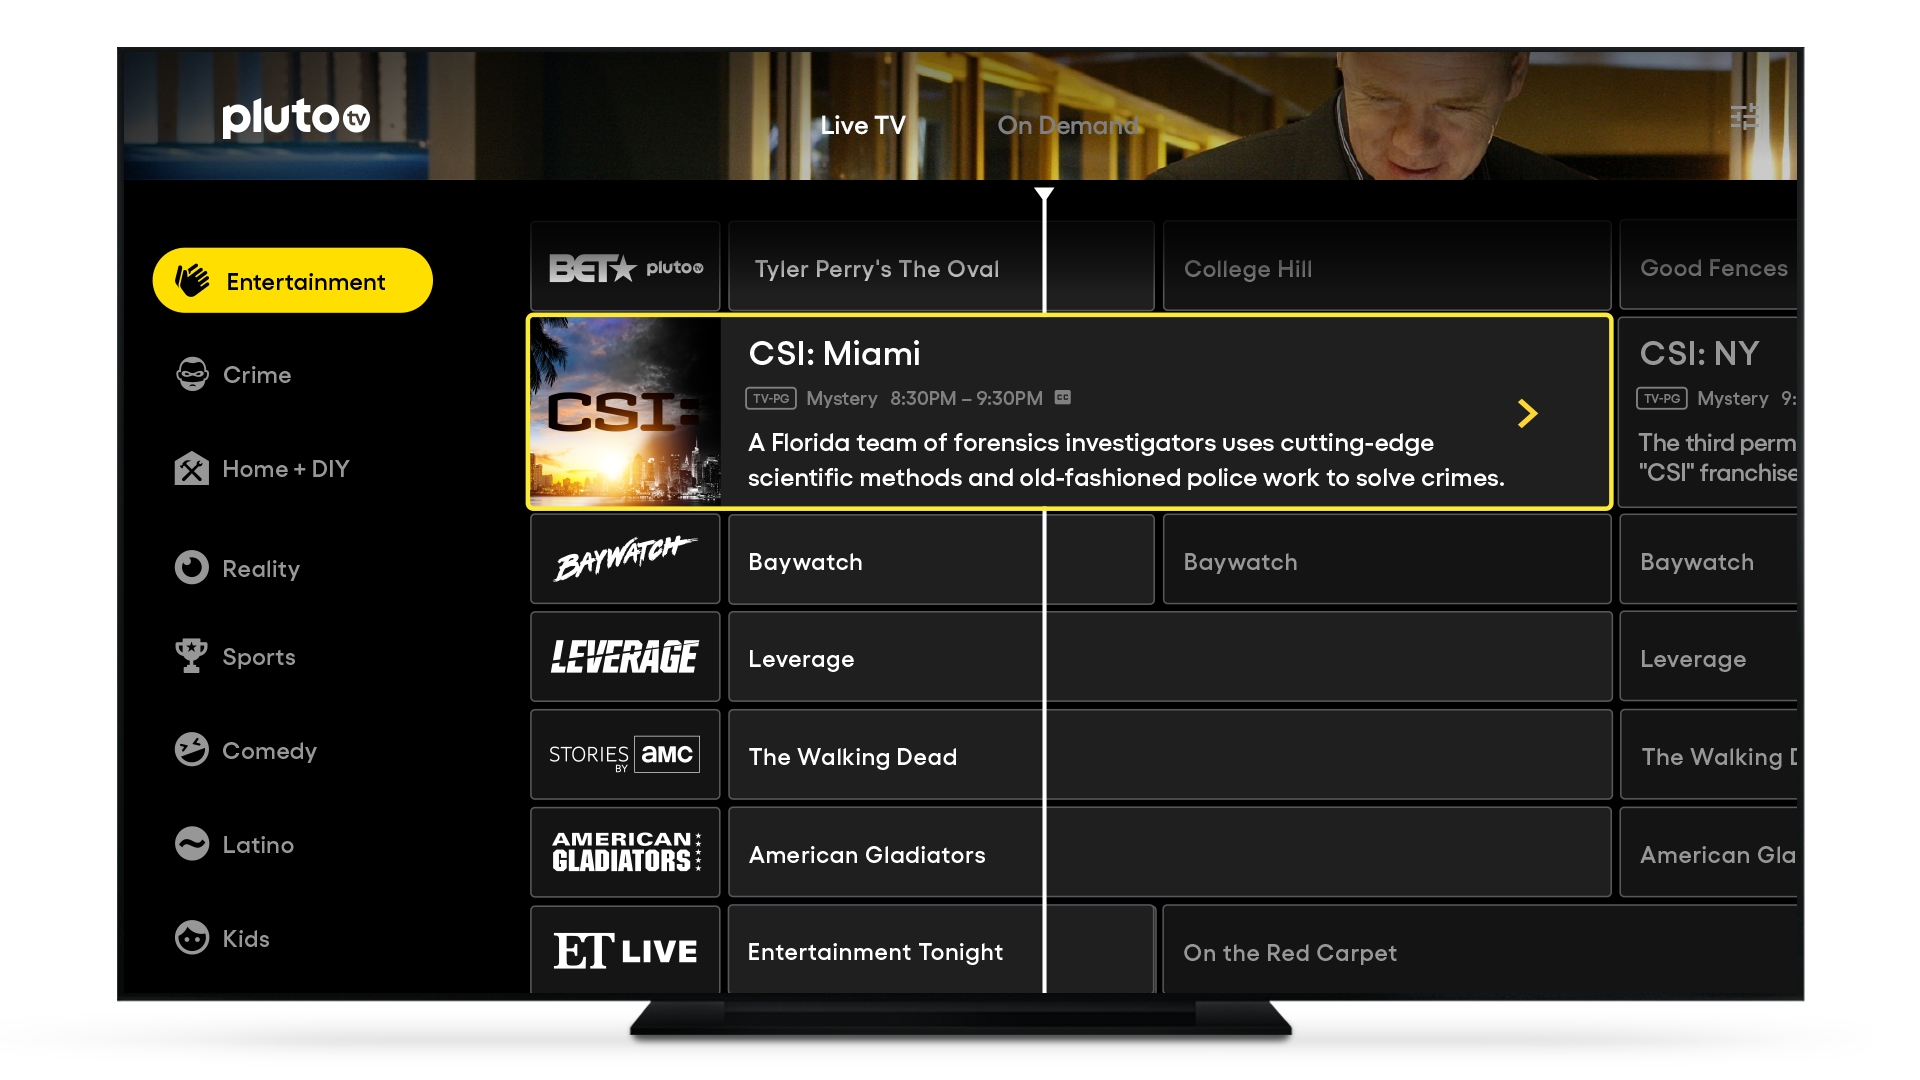 100+ Channels of free live TV 24/7